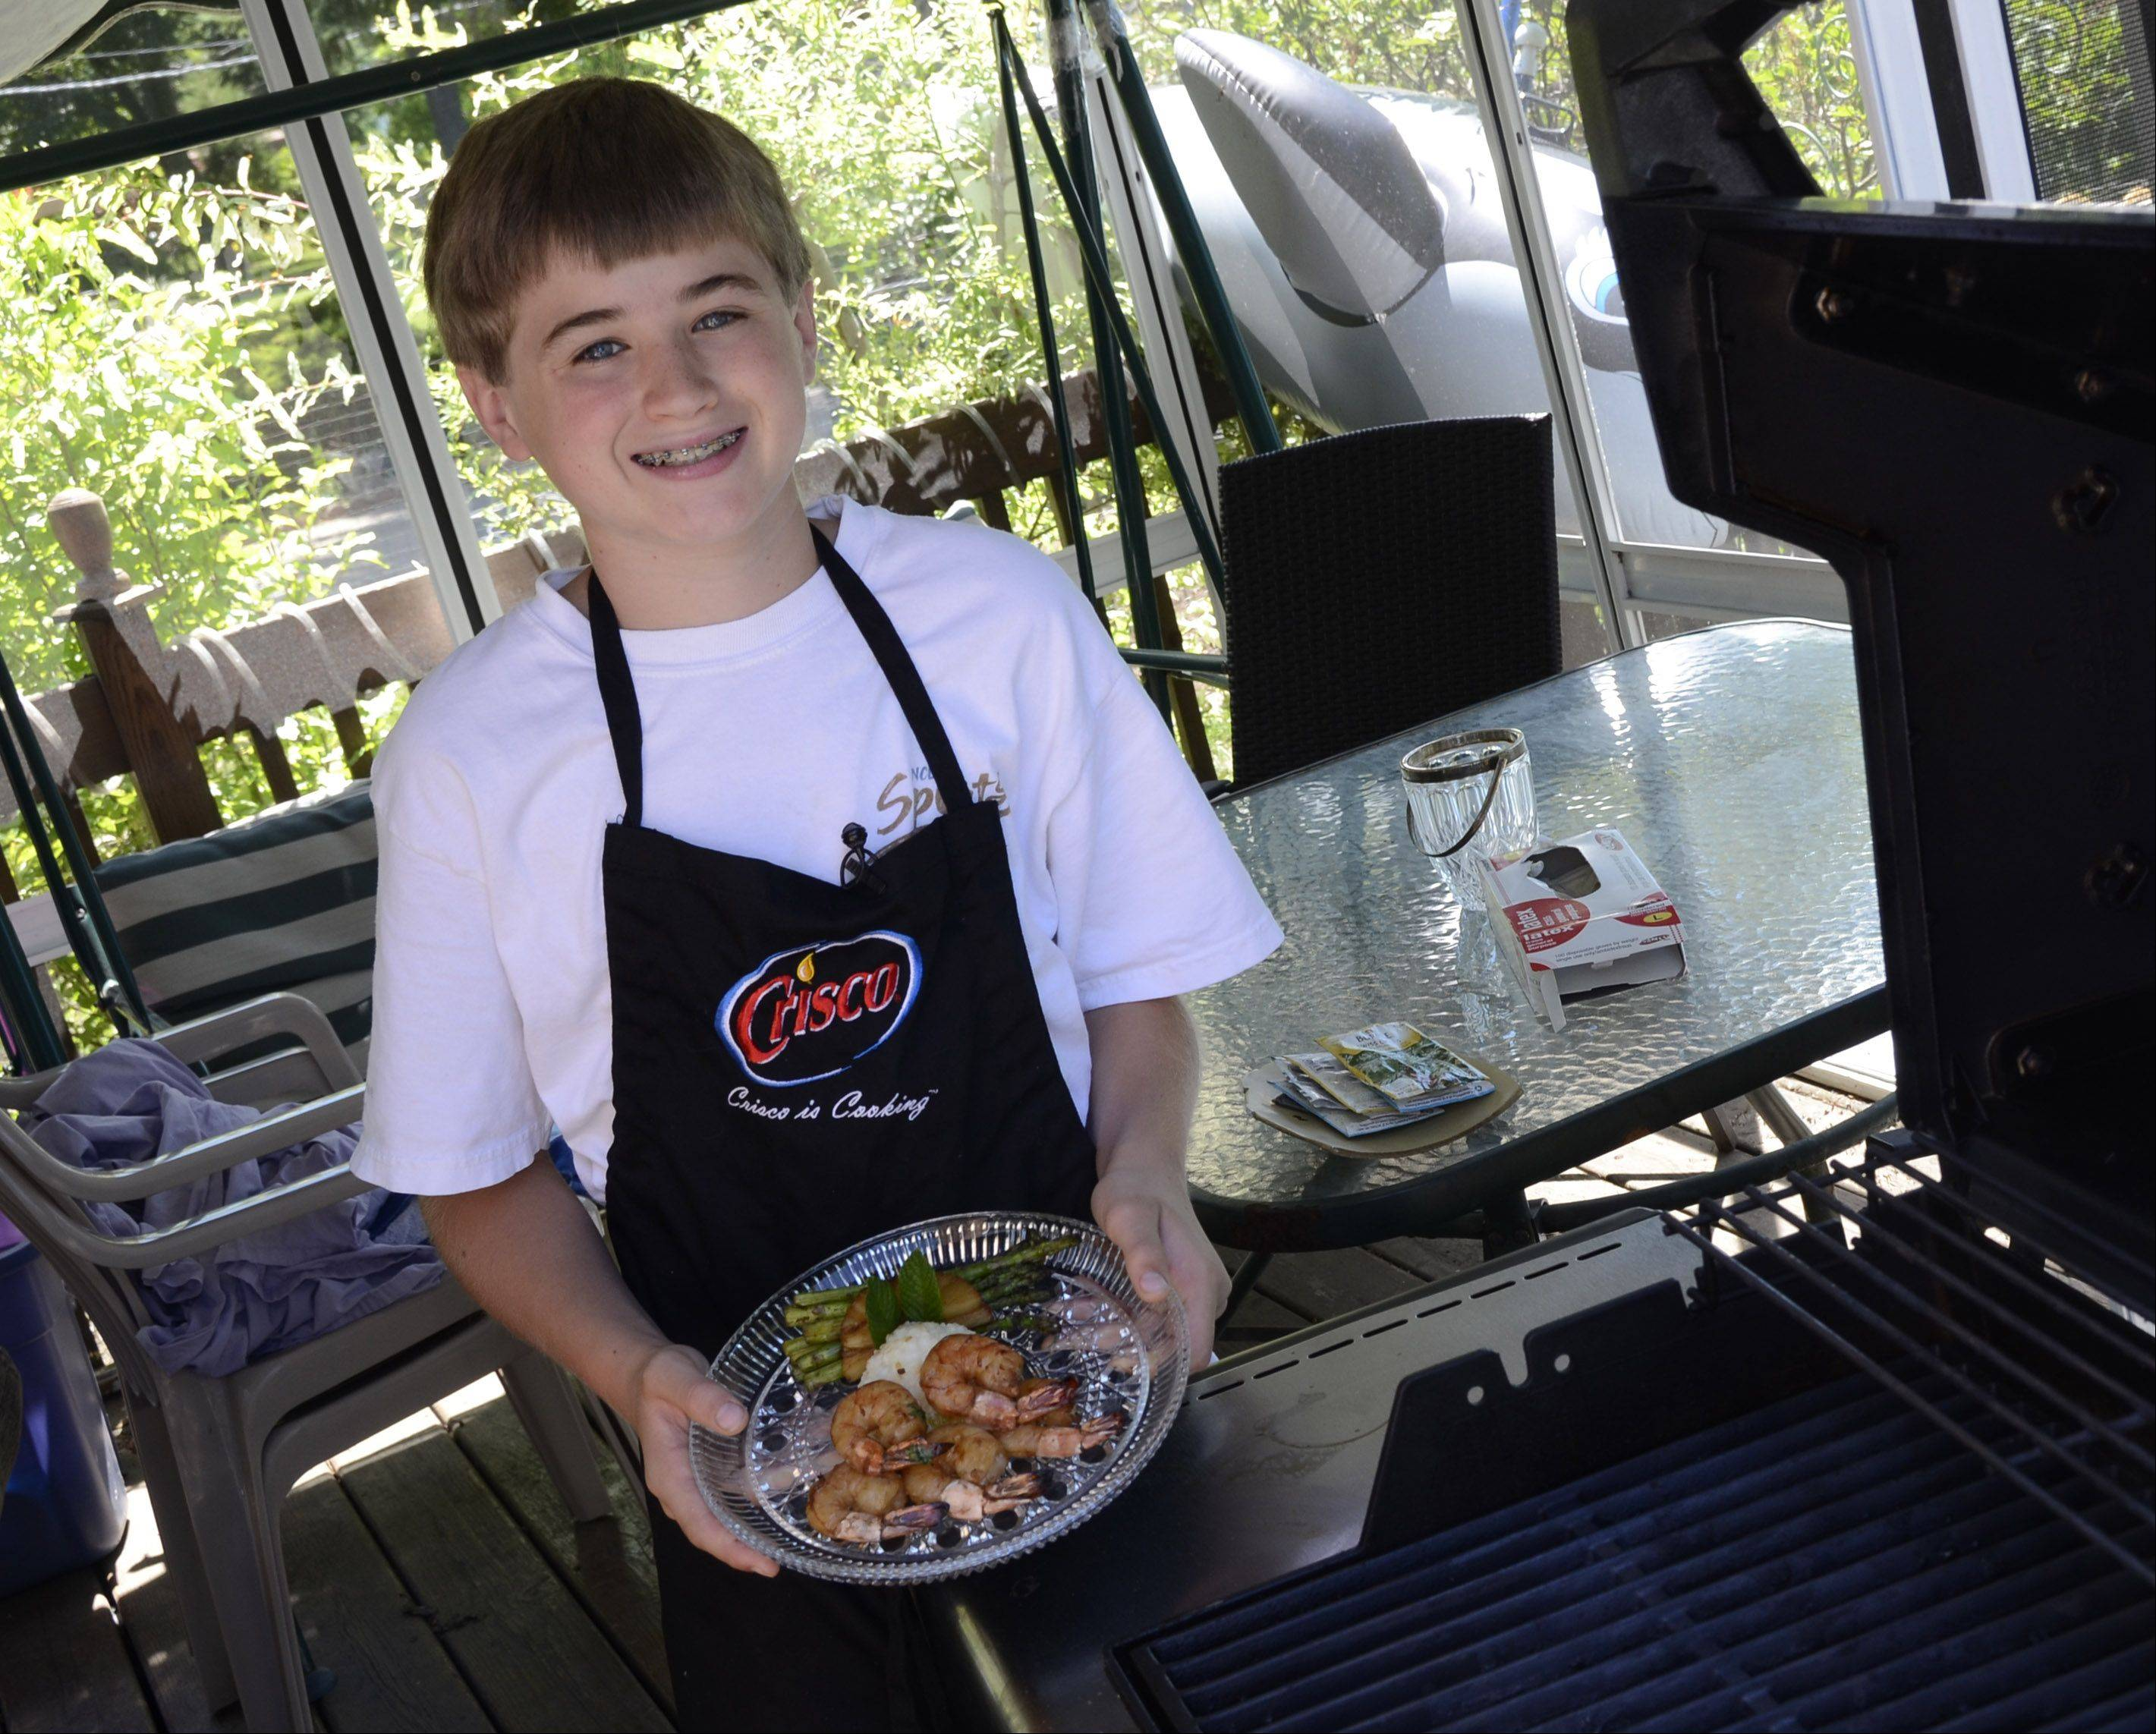 At 13, Steven Buchholz of Arlington Heights can give cooks three times his age a run for their money. He has won a national award for his pie and creates delicious family meals.